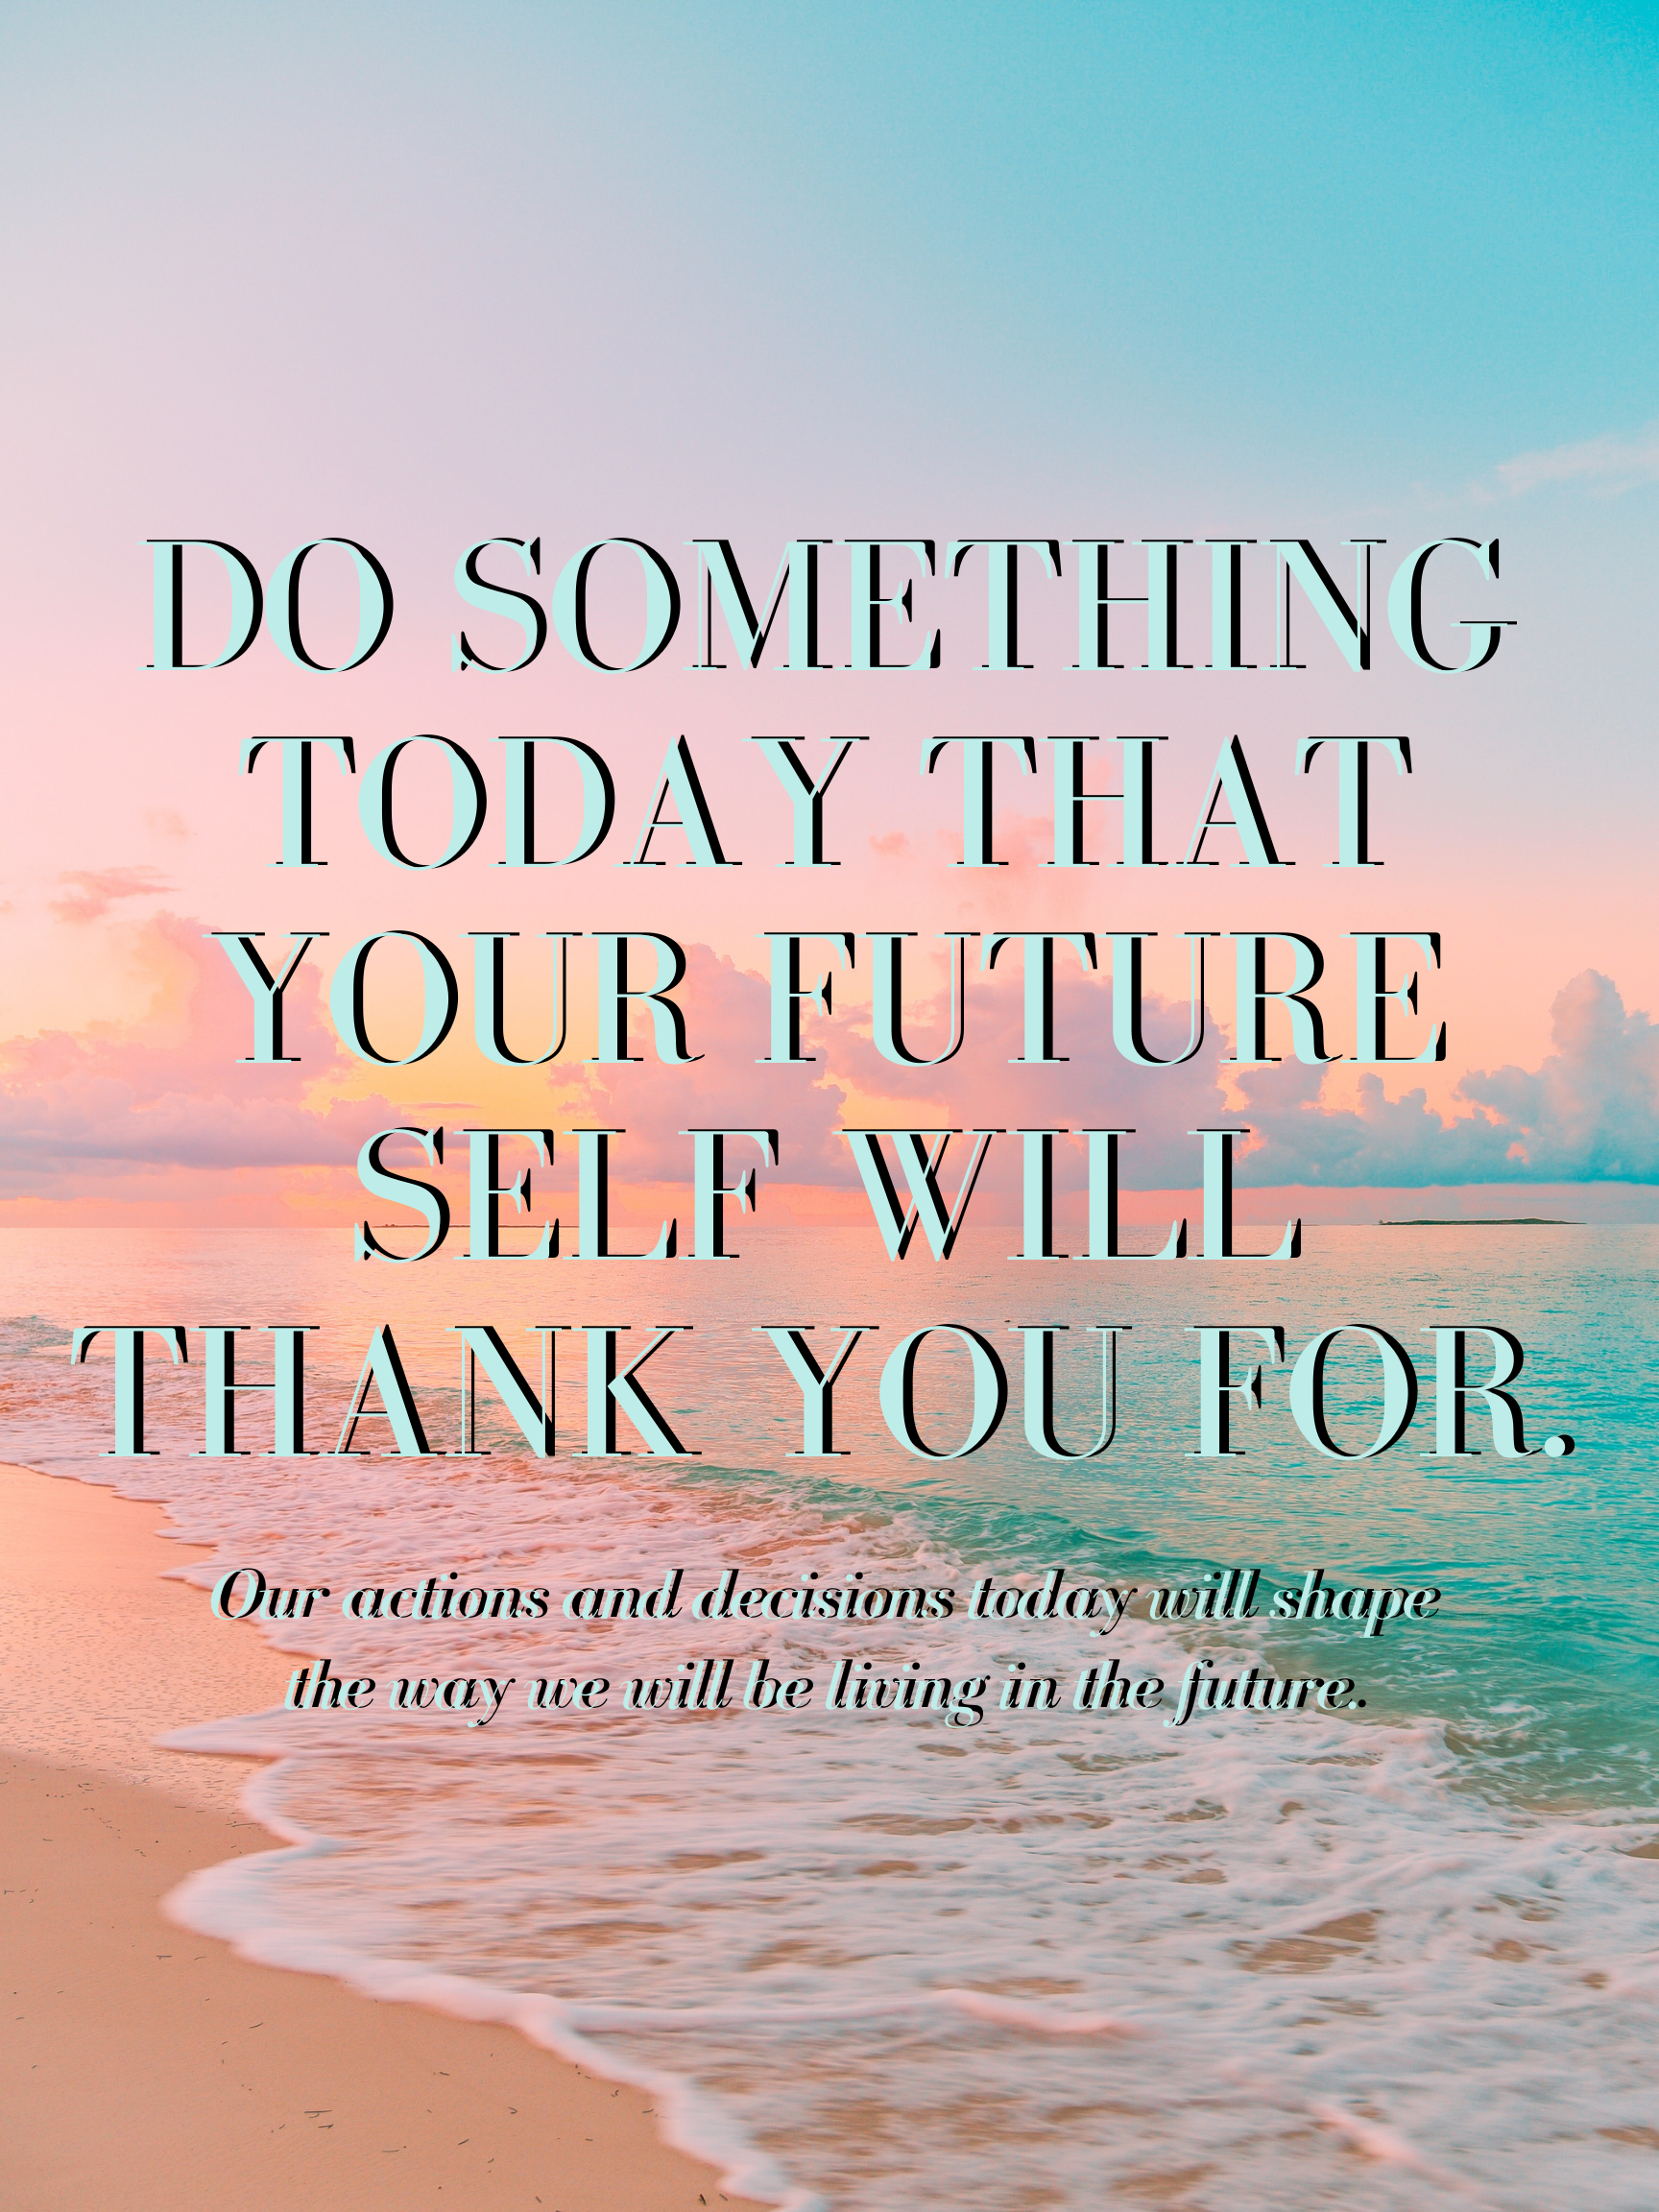 [image] Do something today that your future self will thank you for!